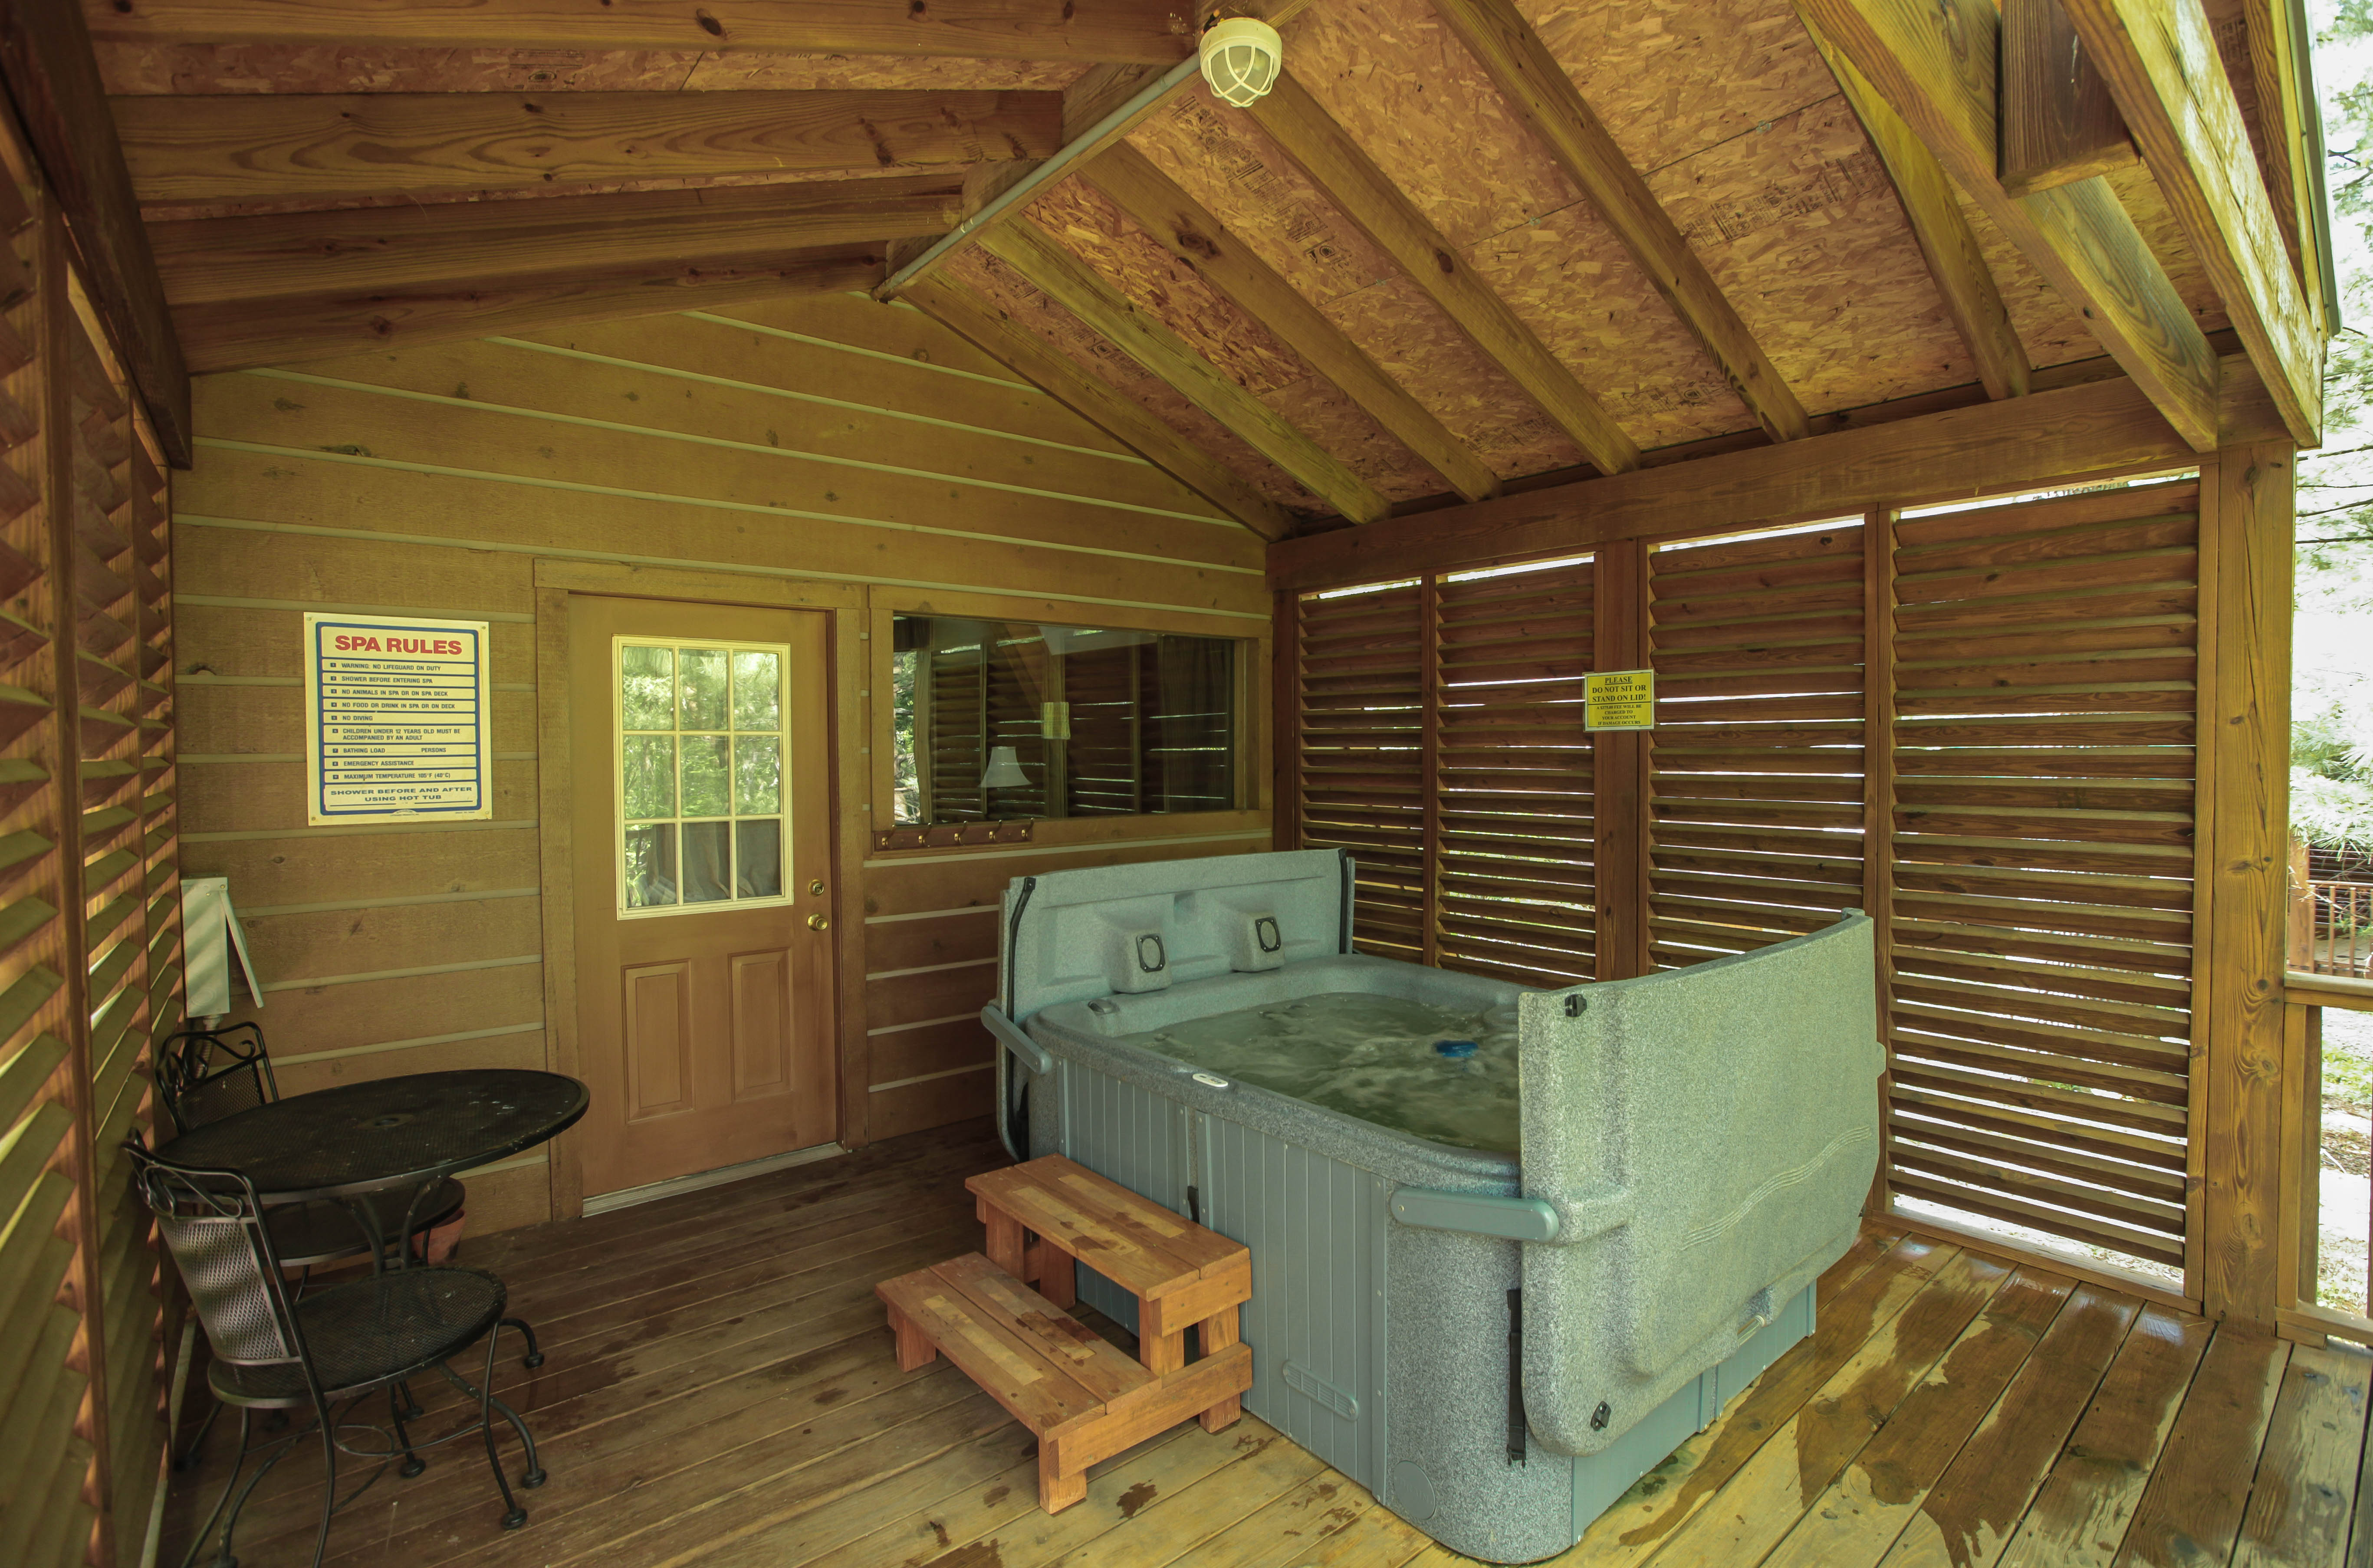 cabins frame escape redawning in a cabin hills property rental vacation ohio getaways logan hocking romantic